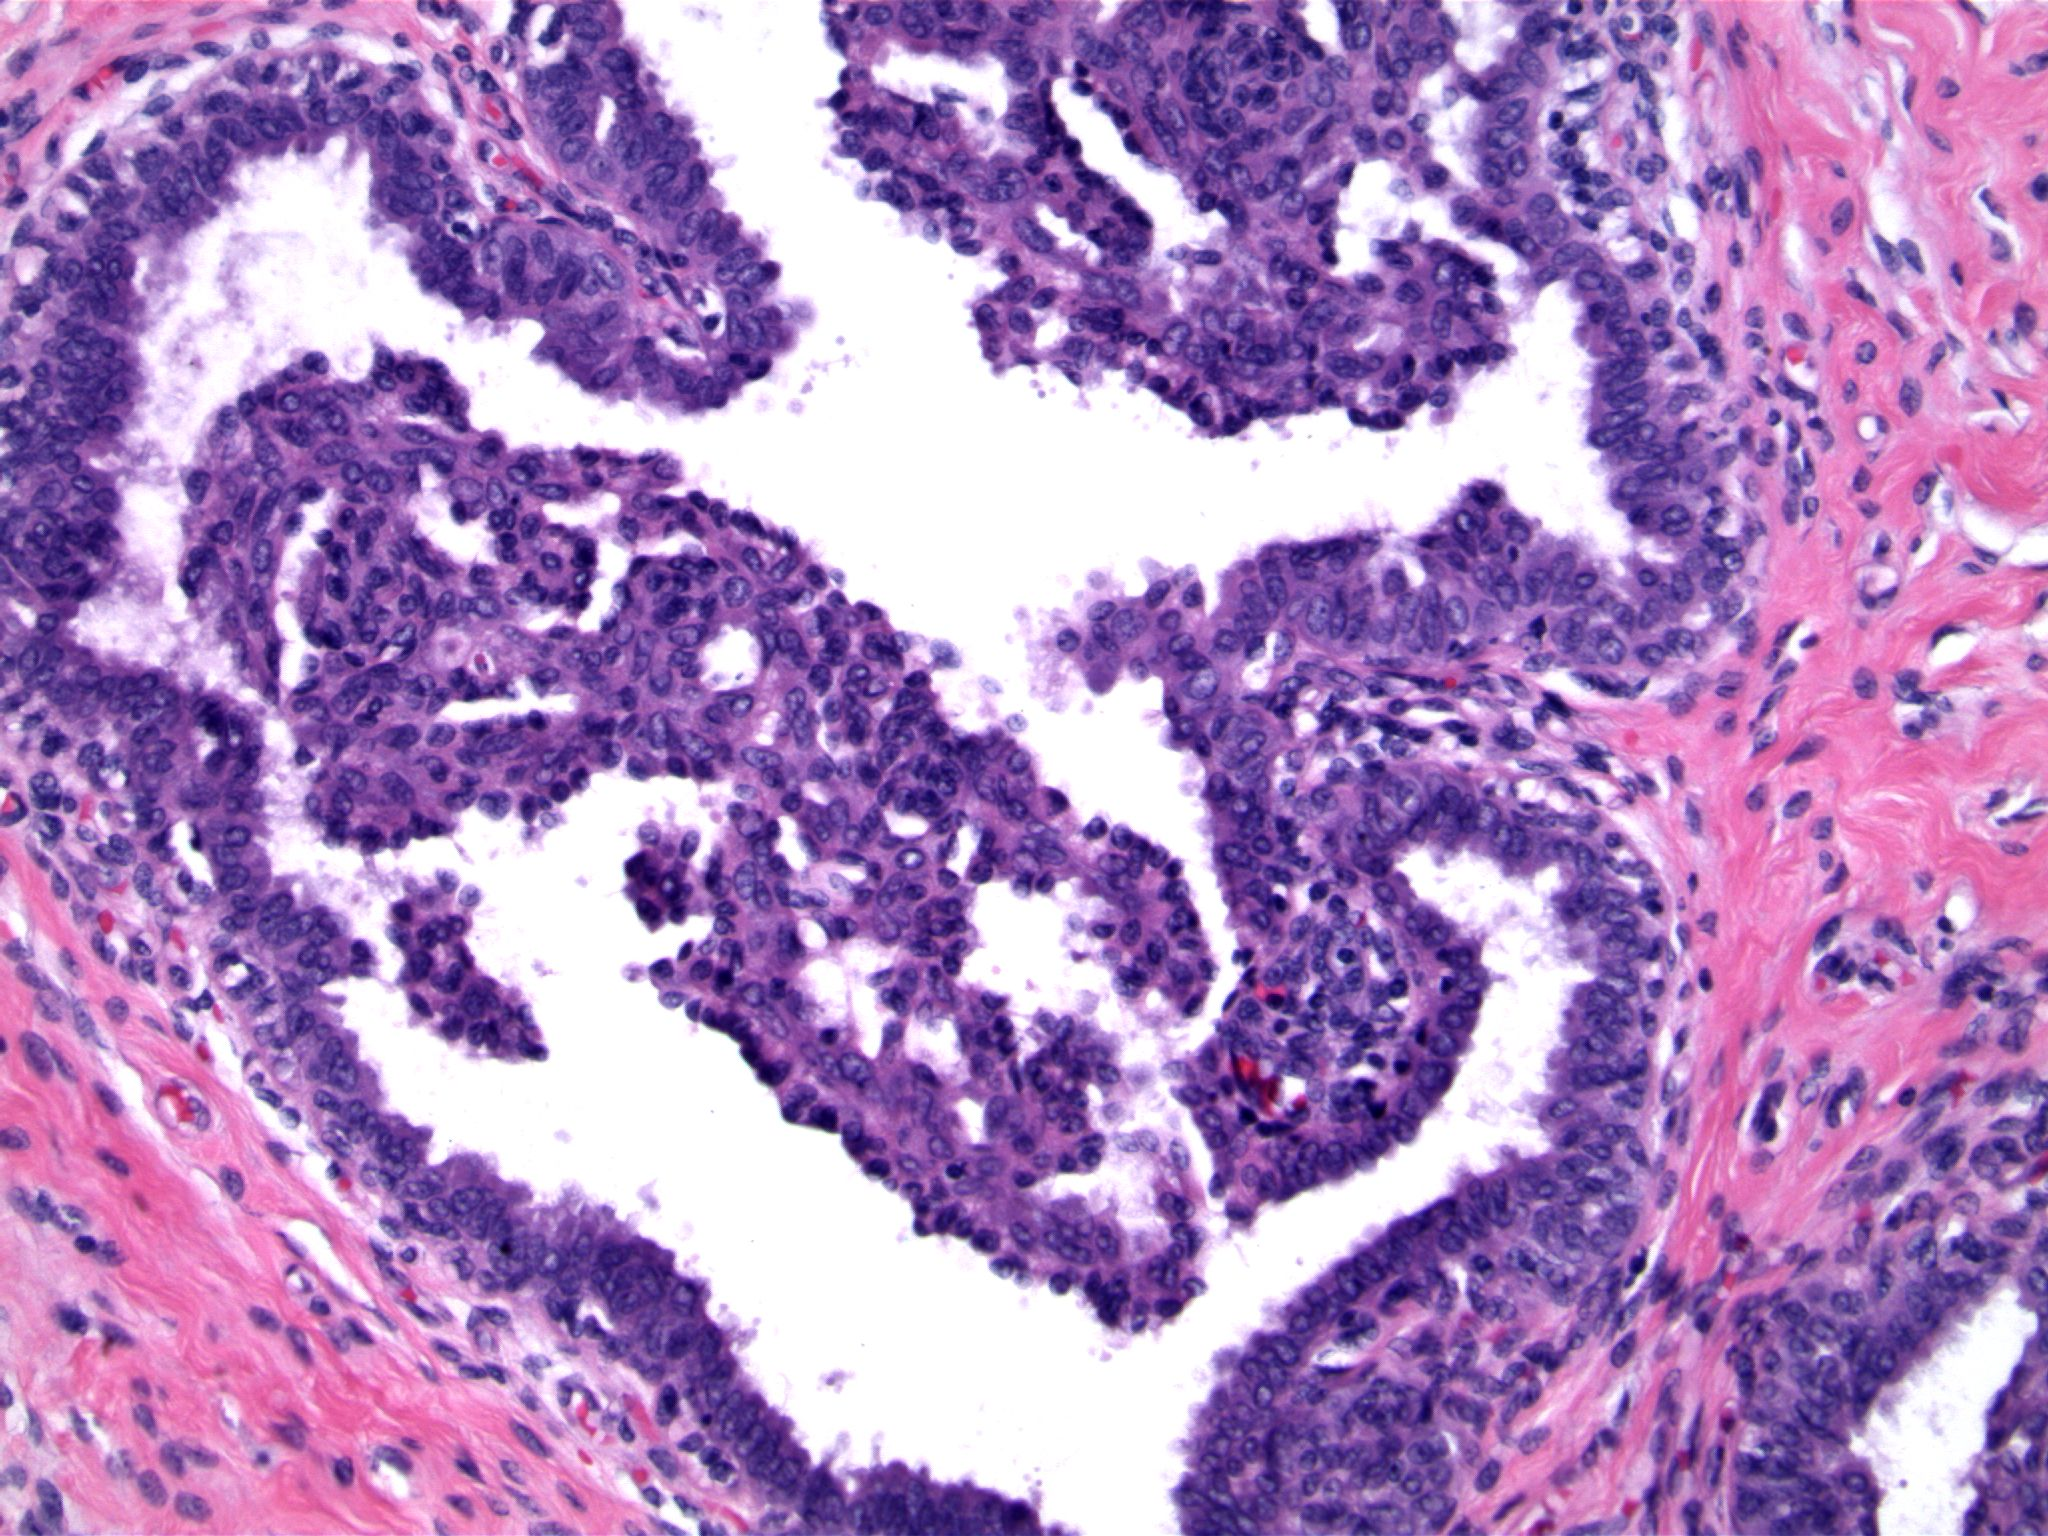 Image 2.  Although the epithelial proliferation is exuberant, the micropapillae are thin and tapering, reminiscent of the hyperplasia seen in gynecomastia.  nuclei are variable, and cellular overlap is evident.  the tips of the micropapillae contain pyknotic cells